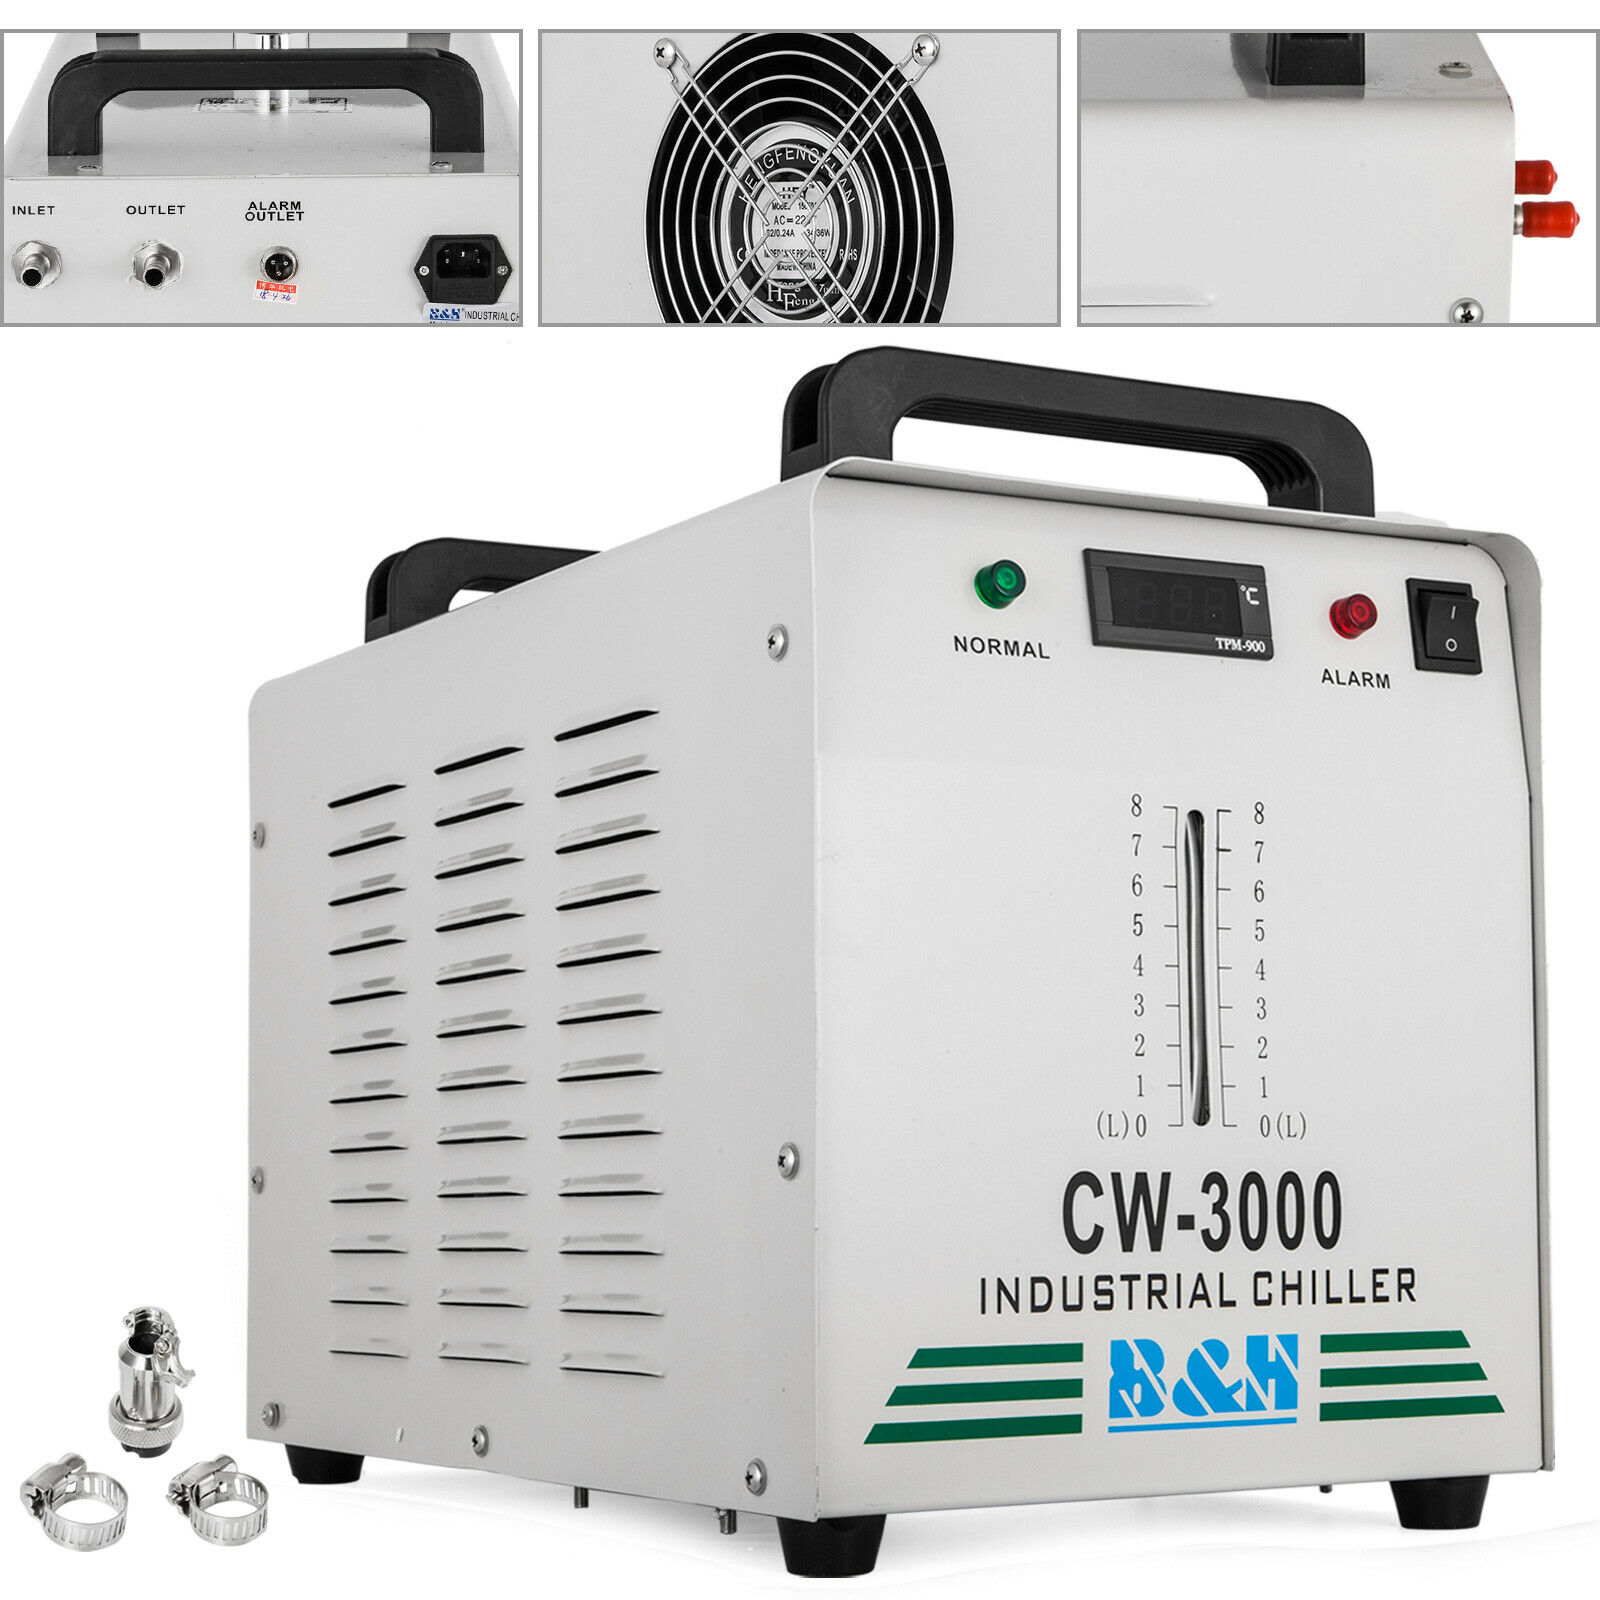 CW-3000 Thermolysis Industrial Water Cooler Chiller for CNC/ Laser Engraver Engraving Machines 60W/80W